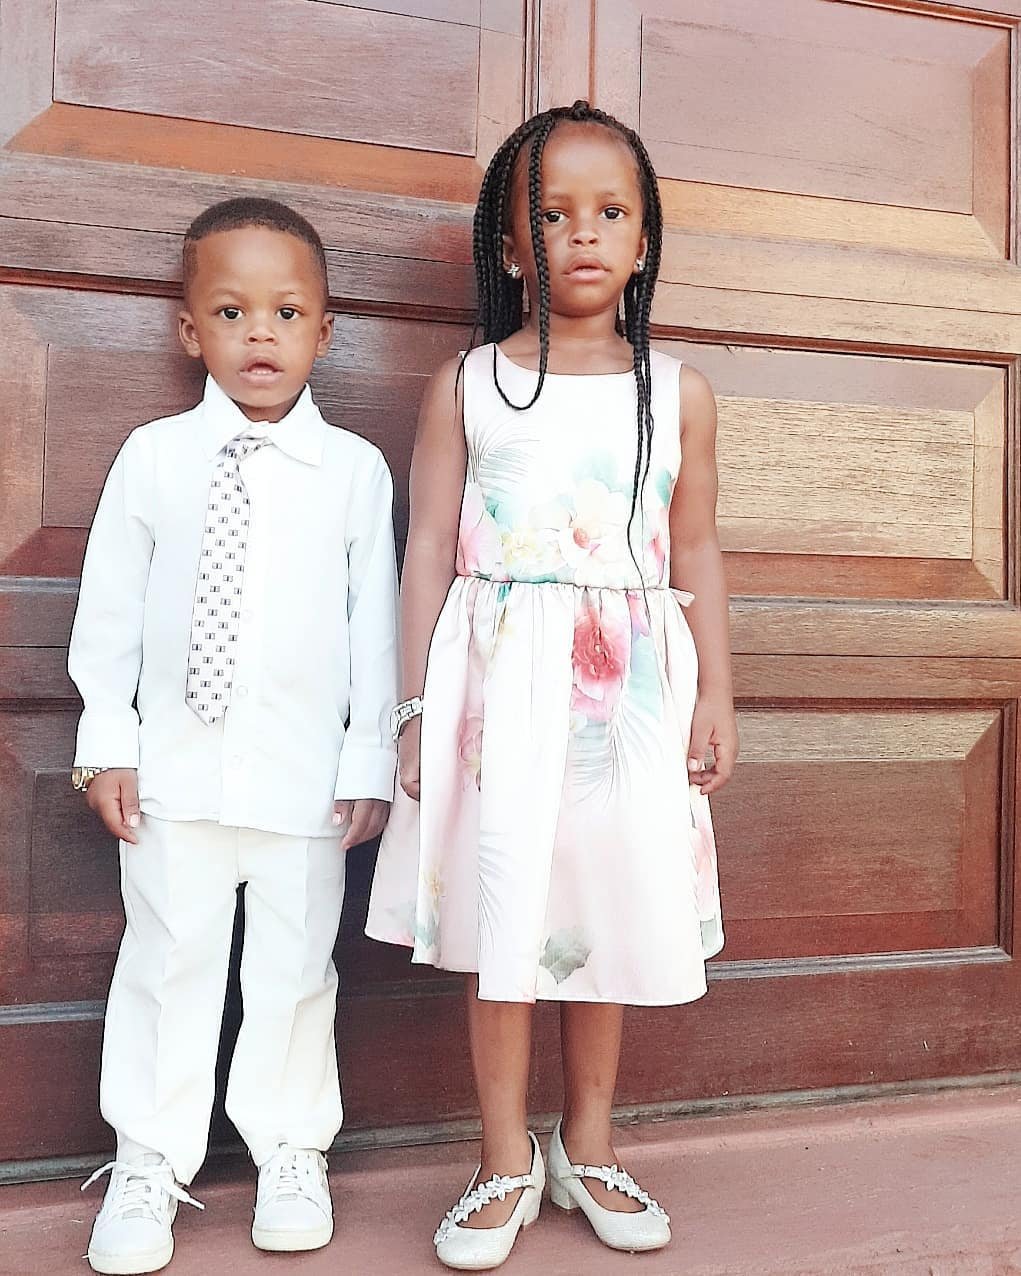 50863107 354415338730966 3964740543017755661 n - Check out photos of Diamond and Zari's all grown kids